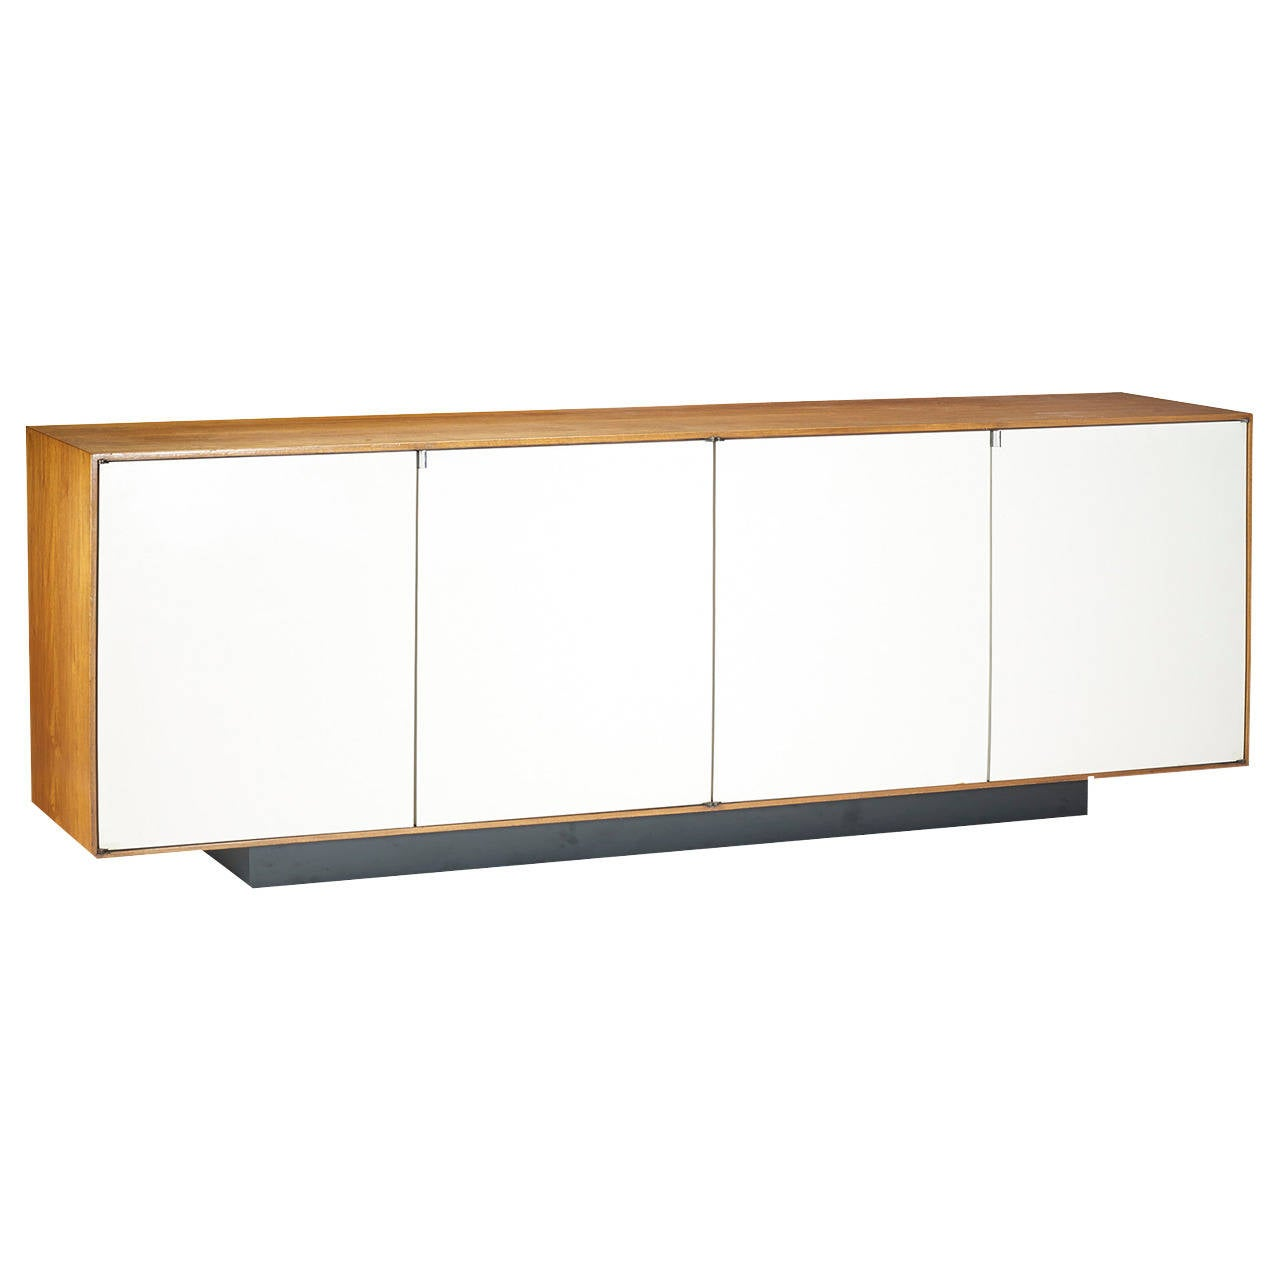 Custom Cabinet By Florence Knoll For Knoll Associates At